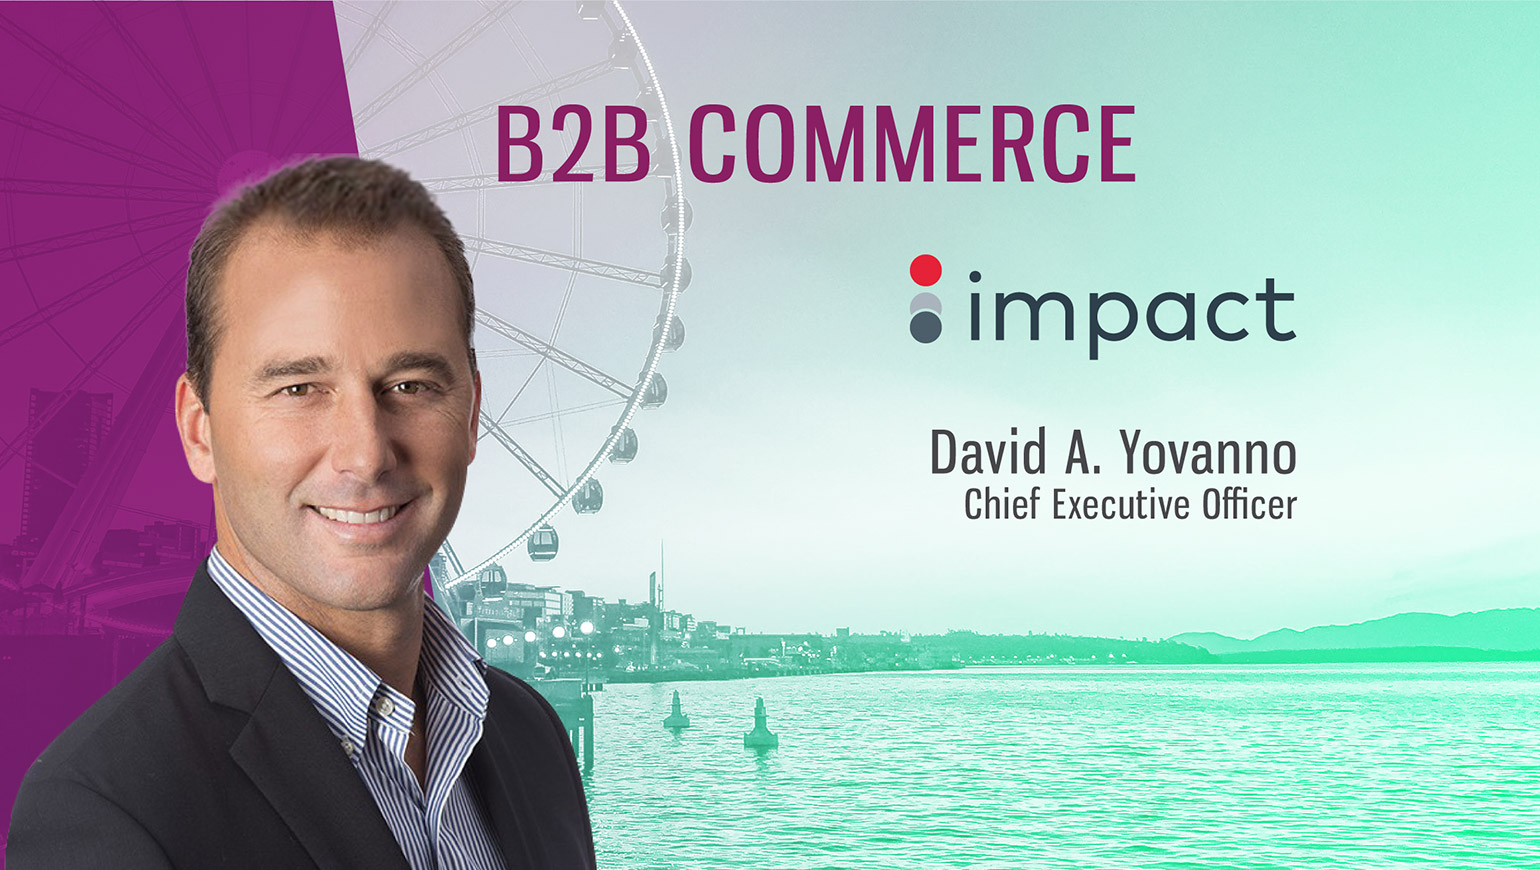 David A. Yovanno, CEO of Impact. B2B commerce